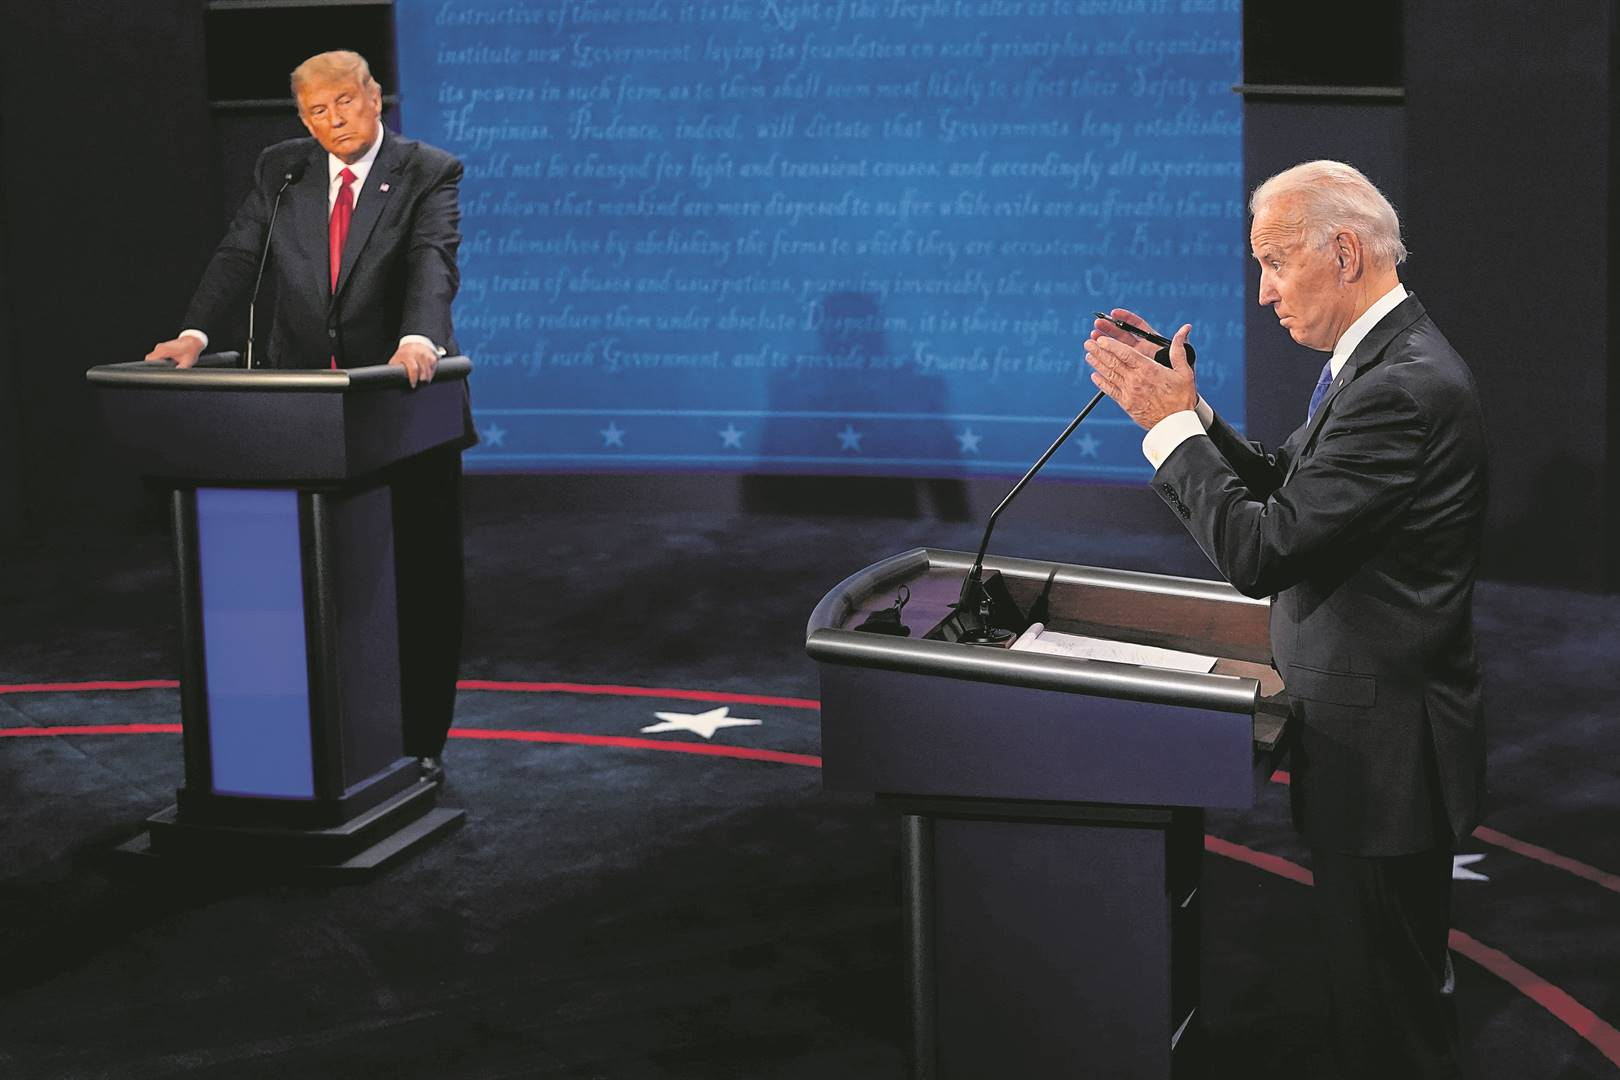 A victory for incumbent Donald Trump would be a further setback in the battle against global warming, while vice-president Joe Biden has promised to prioritise the environment.